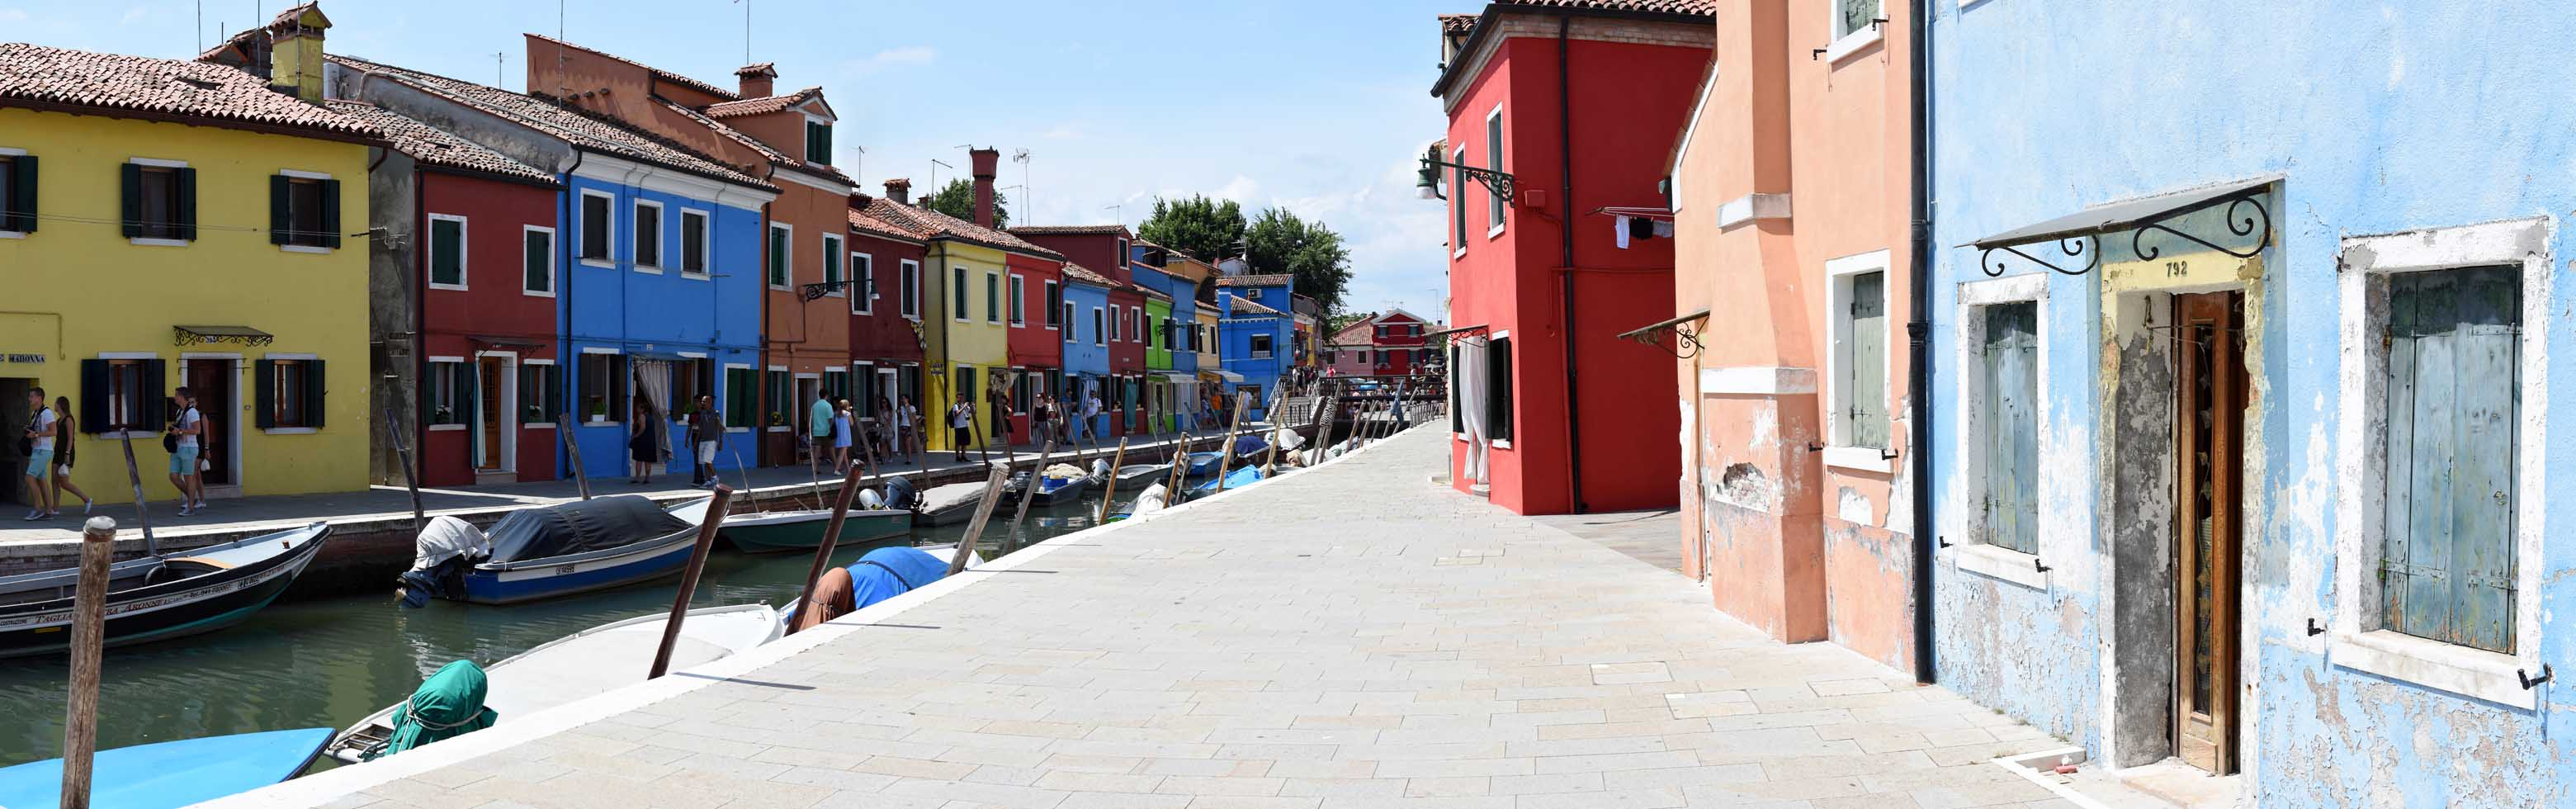 Canal panorama in Burano